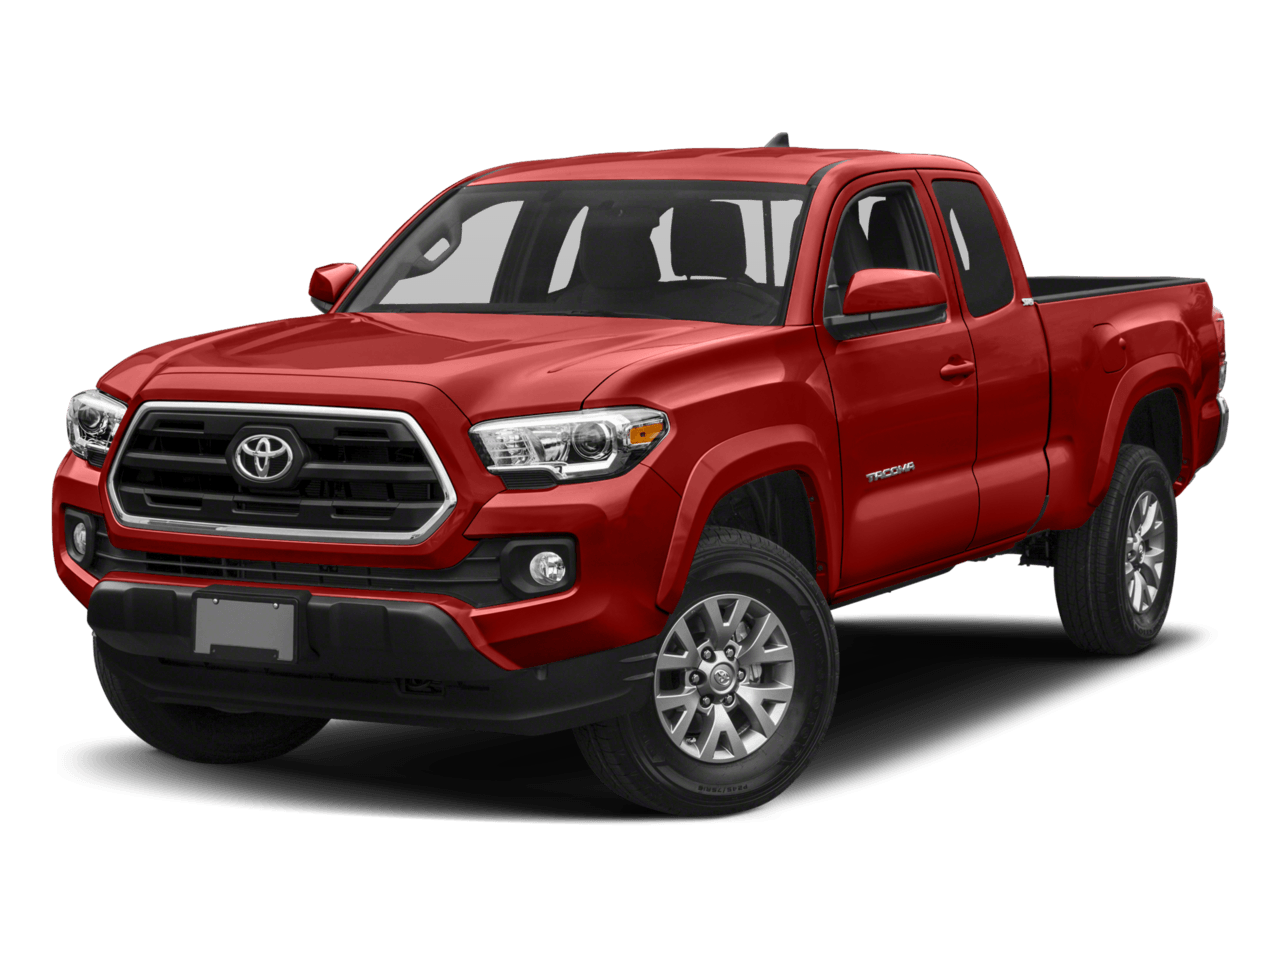 2020 Tacoma Access Cab V6 SR5 TRD Offroad Package